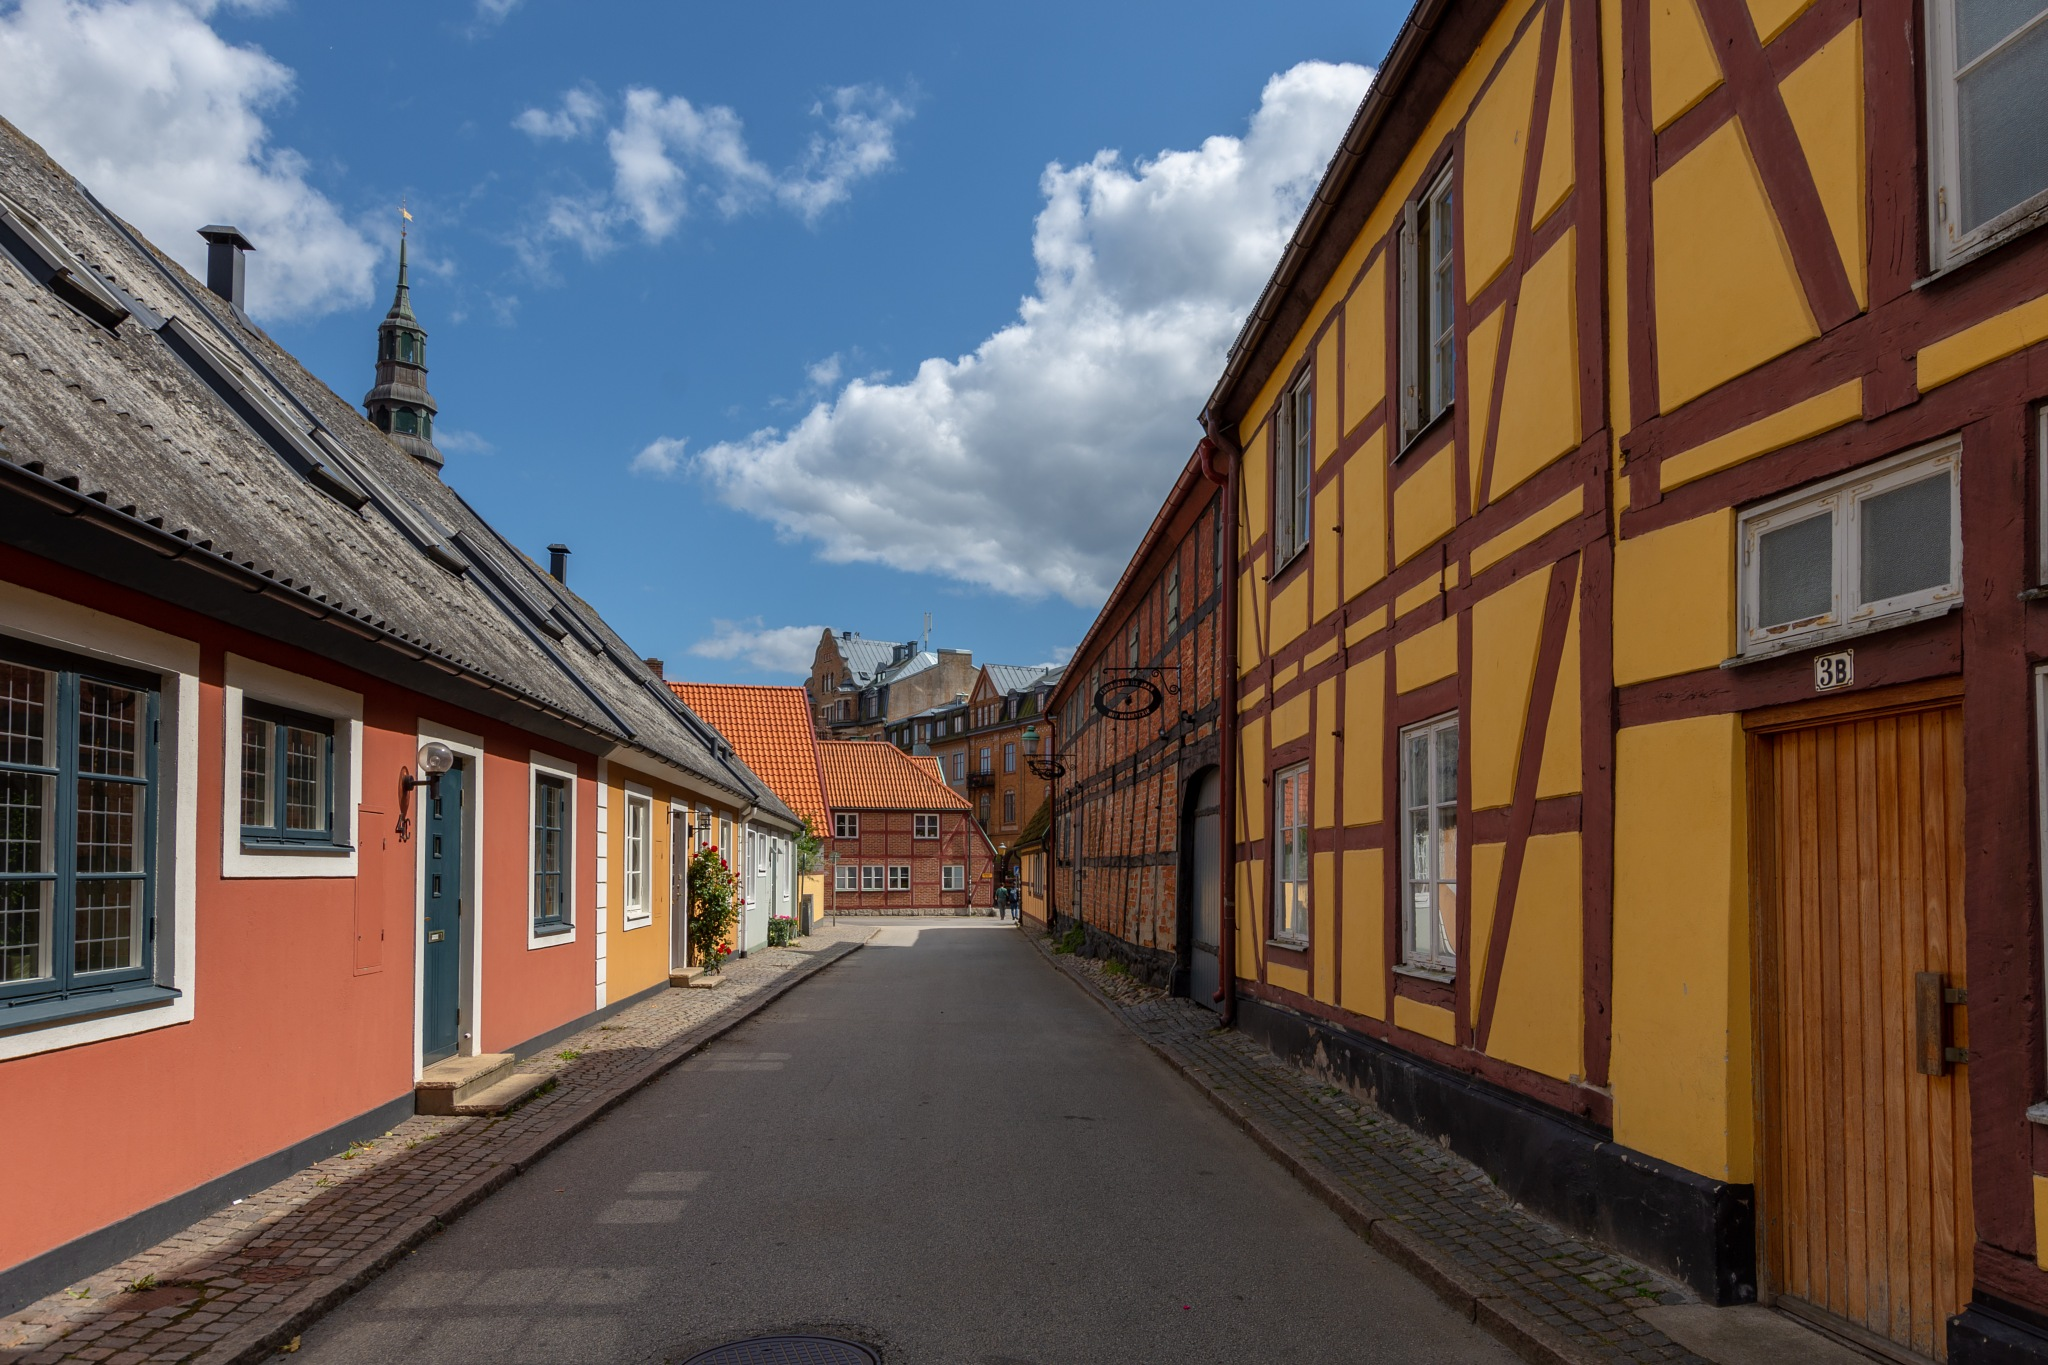 Colors of Ystad by Awende